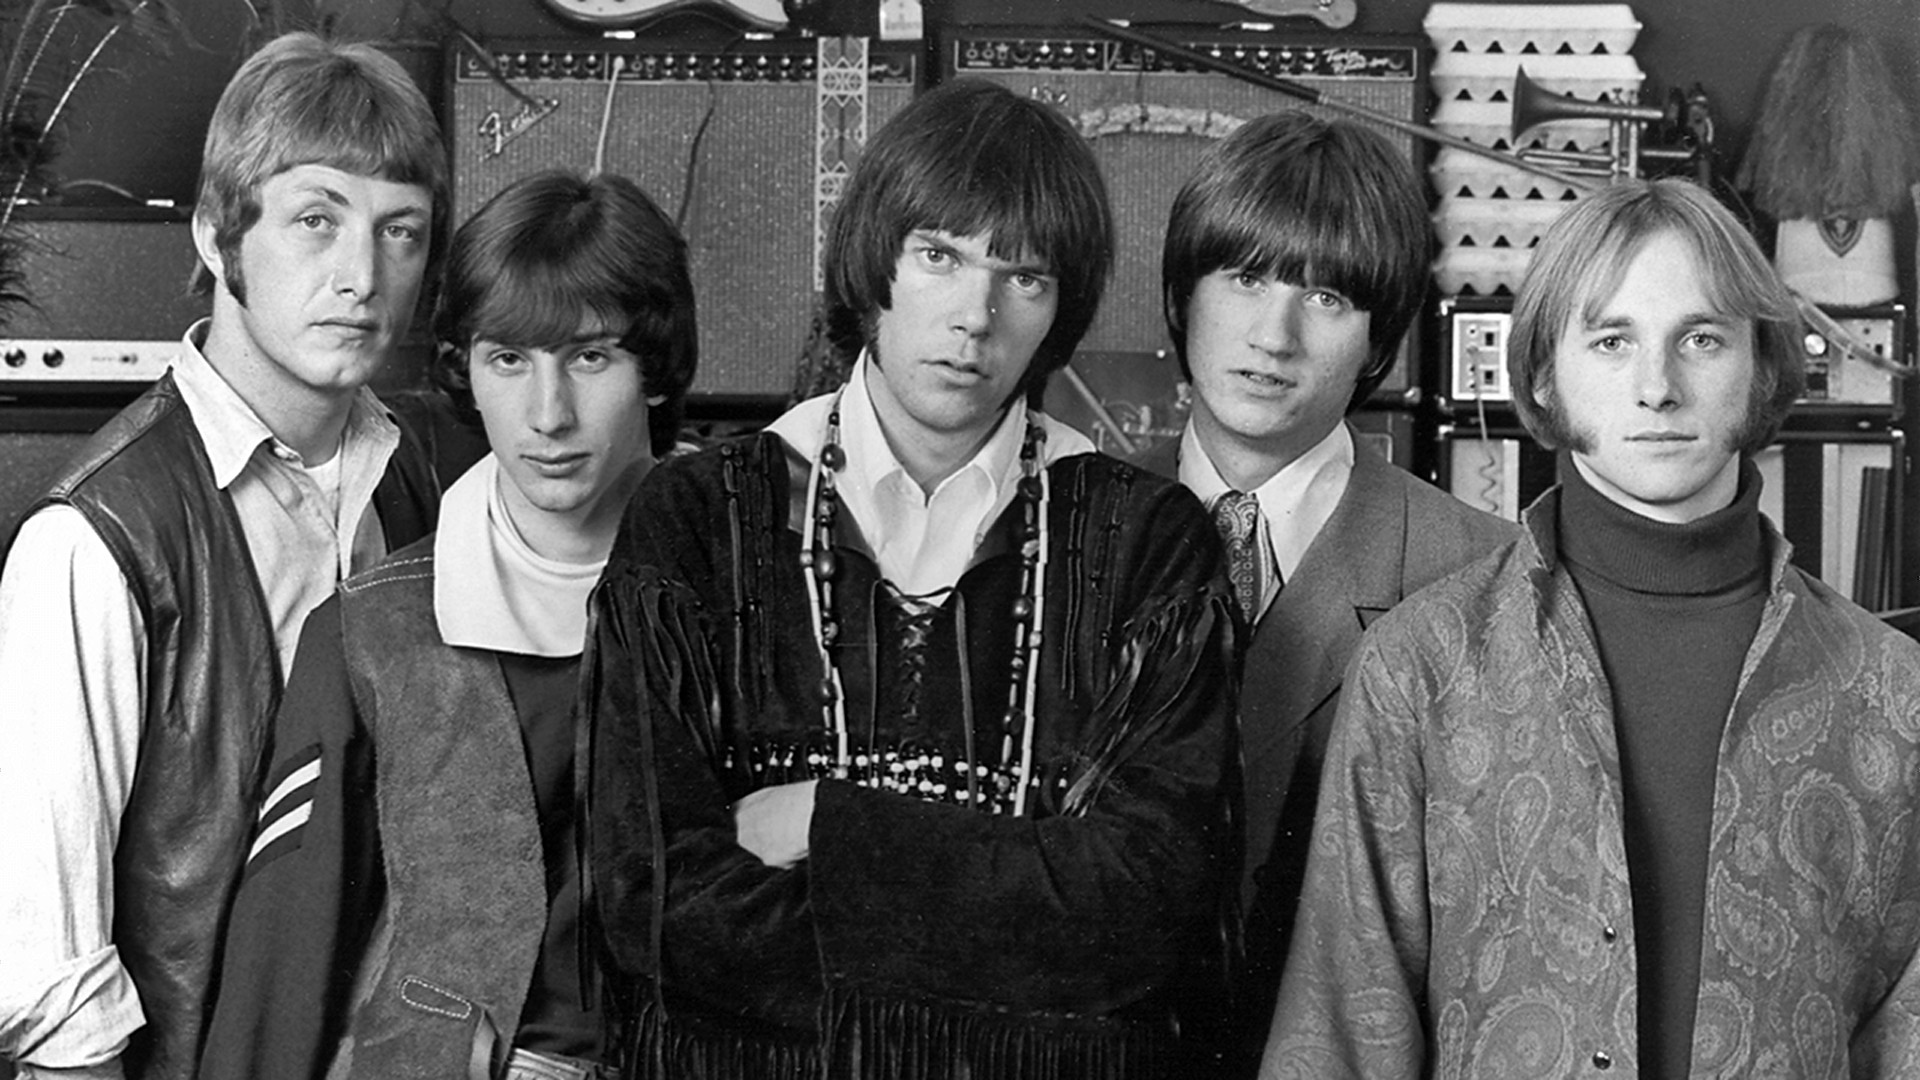 BUFFALO - … for Buffalo Springfield and their song For What It's Worth featuring in the album Buffalo Springfield released in 1967.